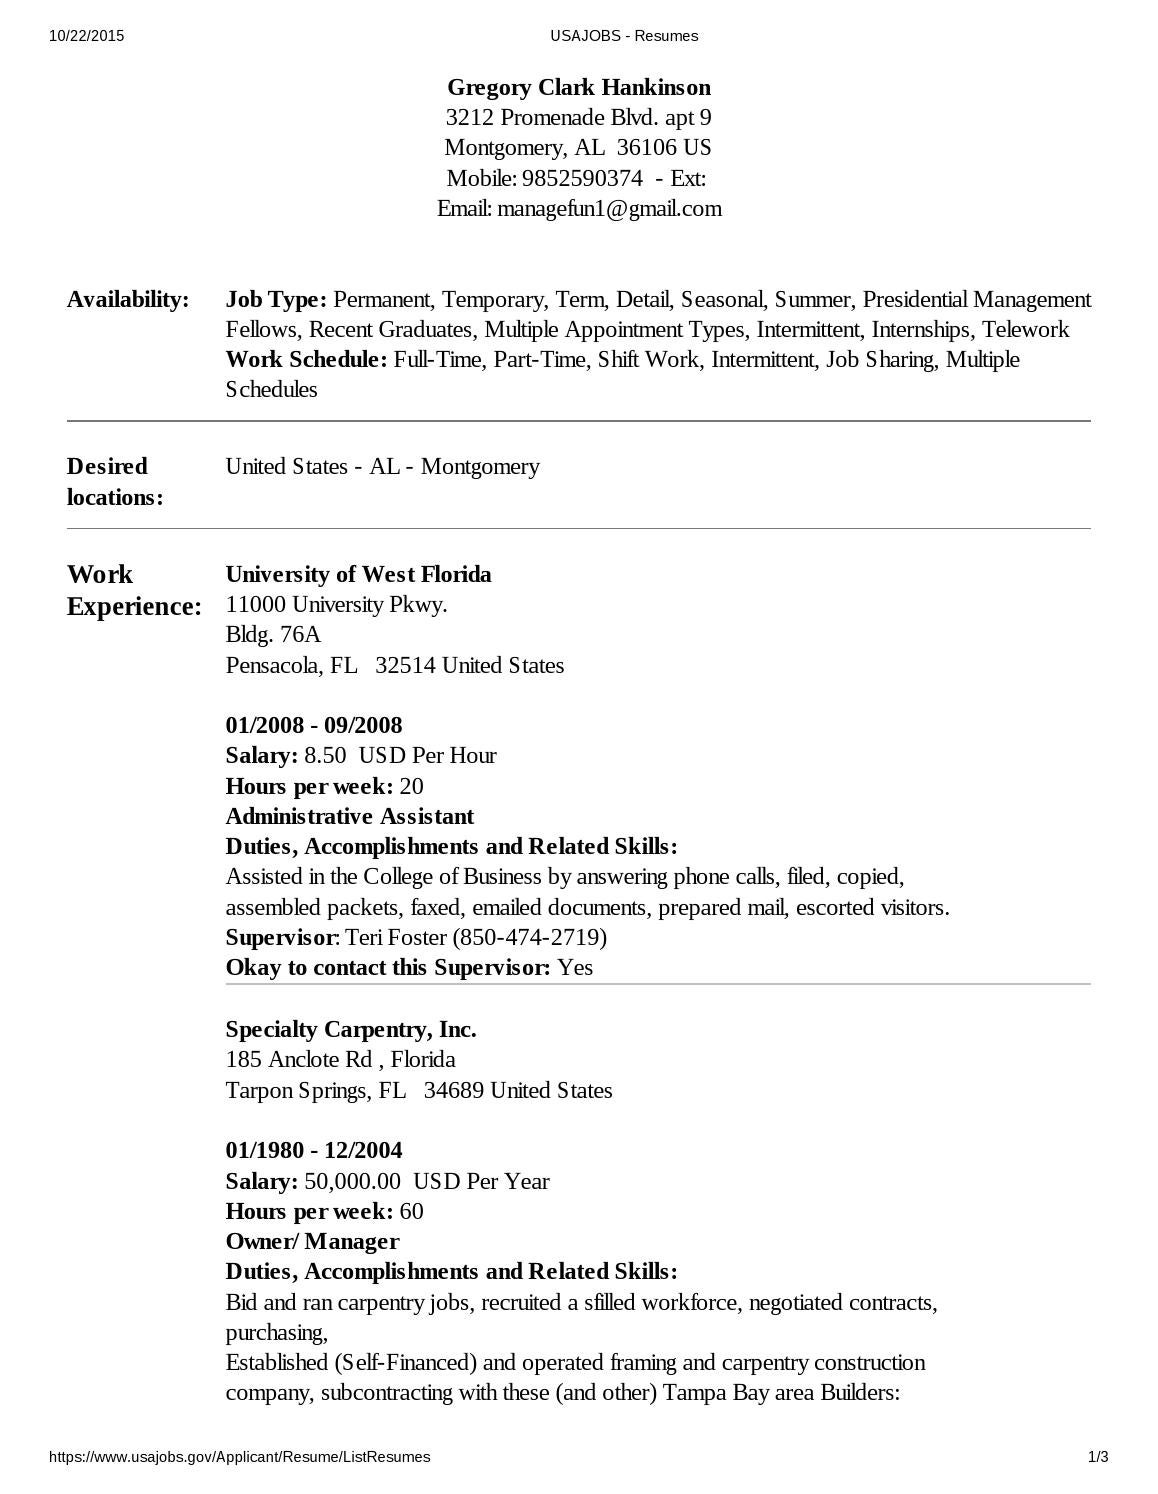 usajobs resume by greg hankinson